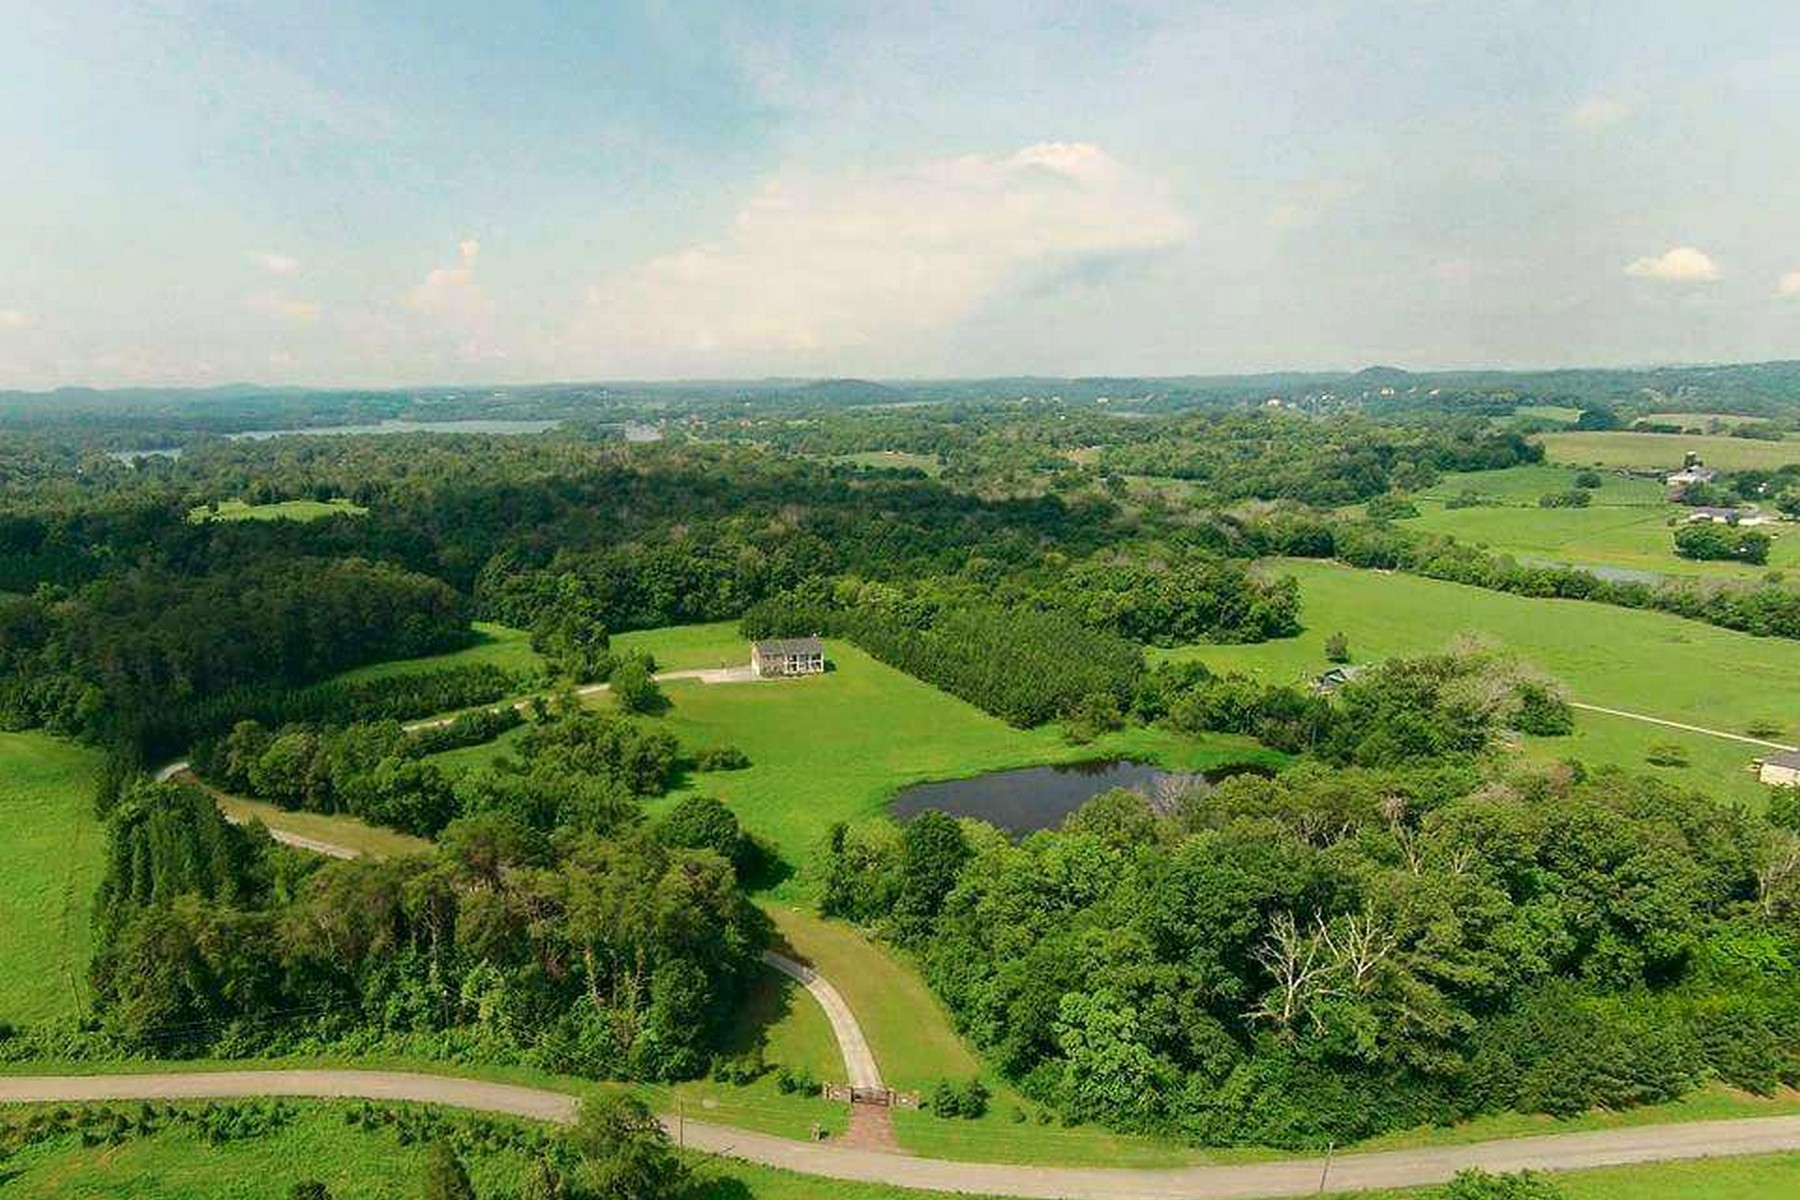 أراضي للـ Sale في Gated 32+ Acres For Development 3541 Windy J Farms, Louisville, Tennessee 37777 United States